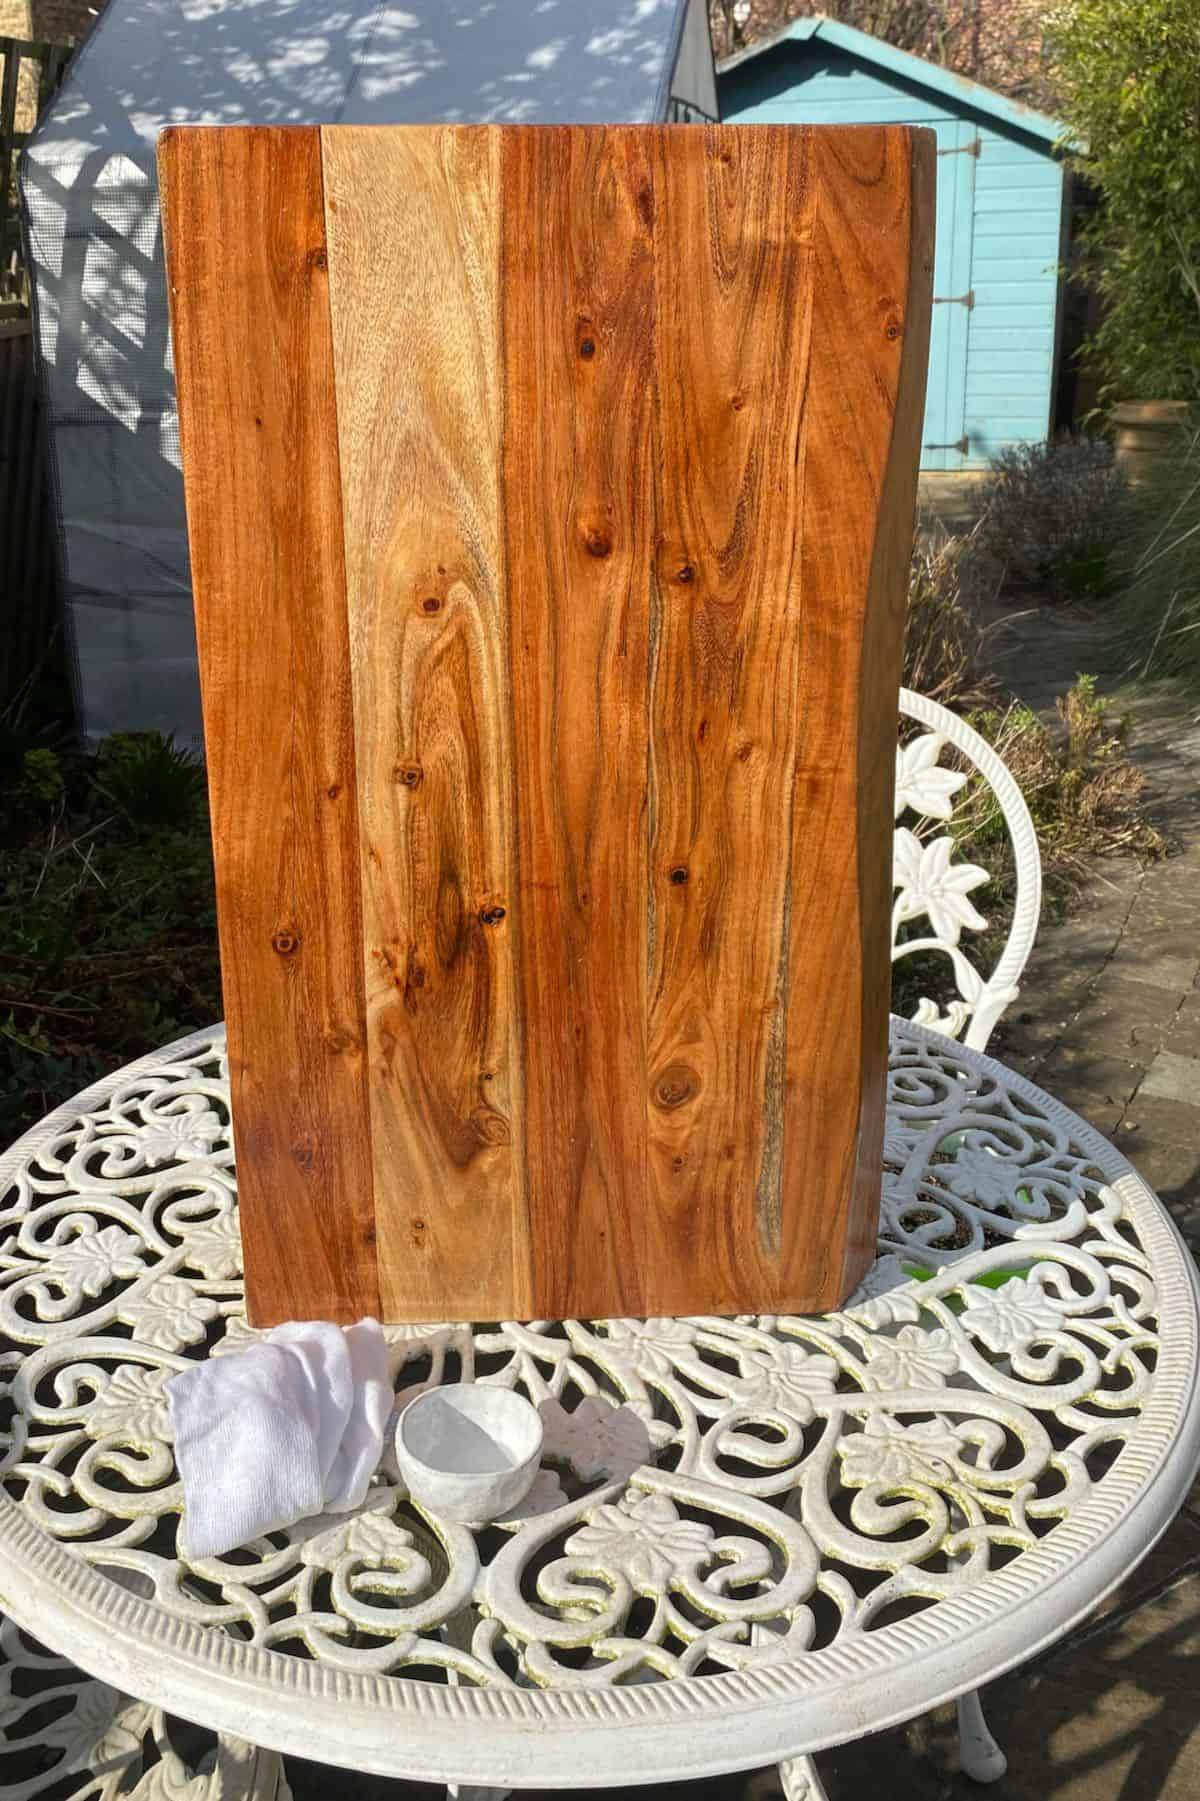 Drying out a wooden board in the sun